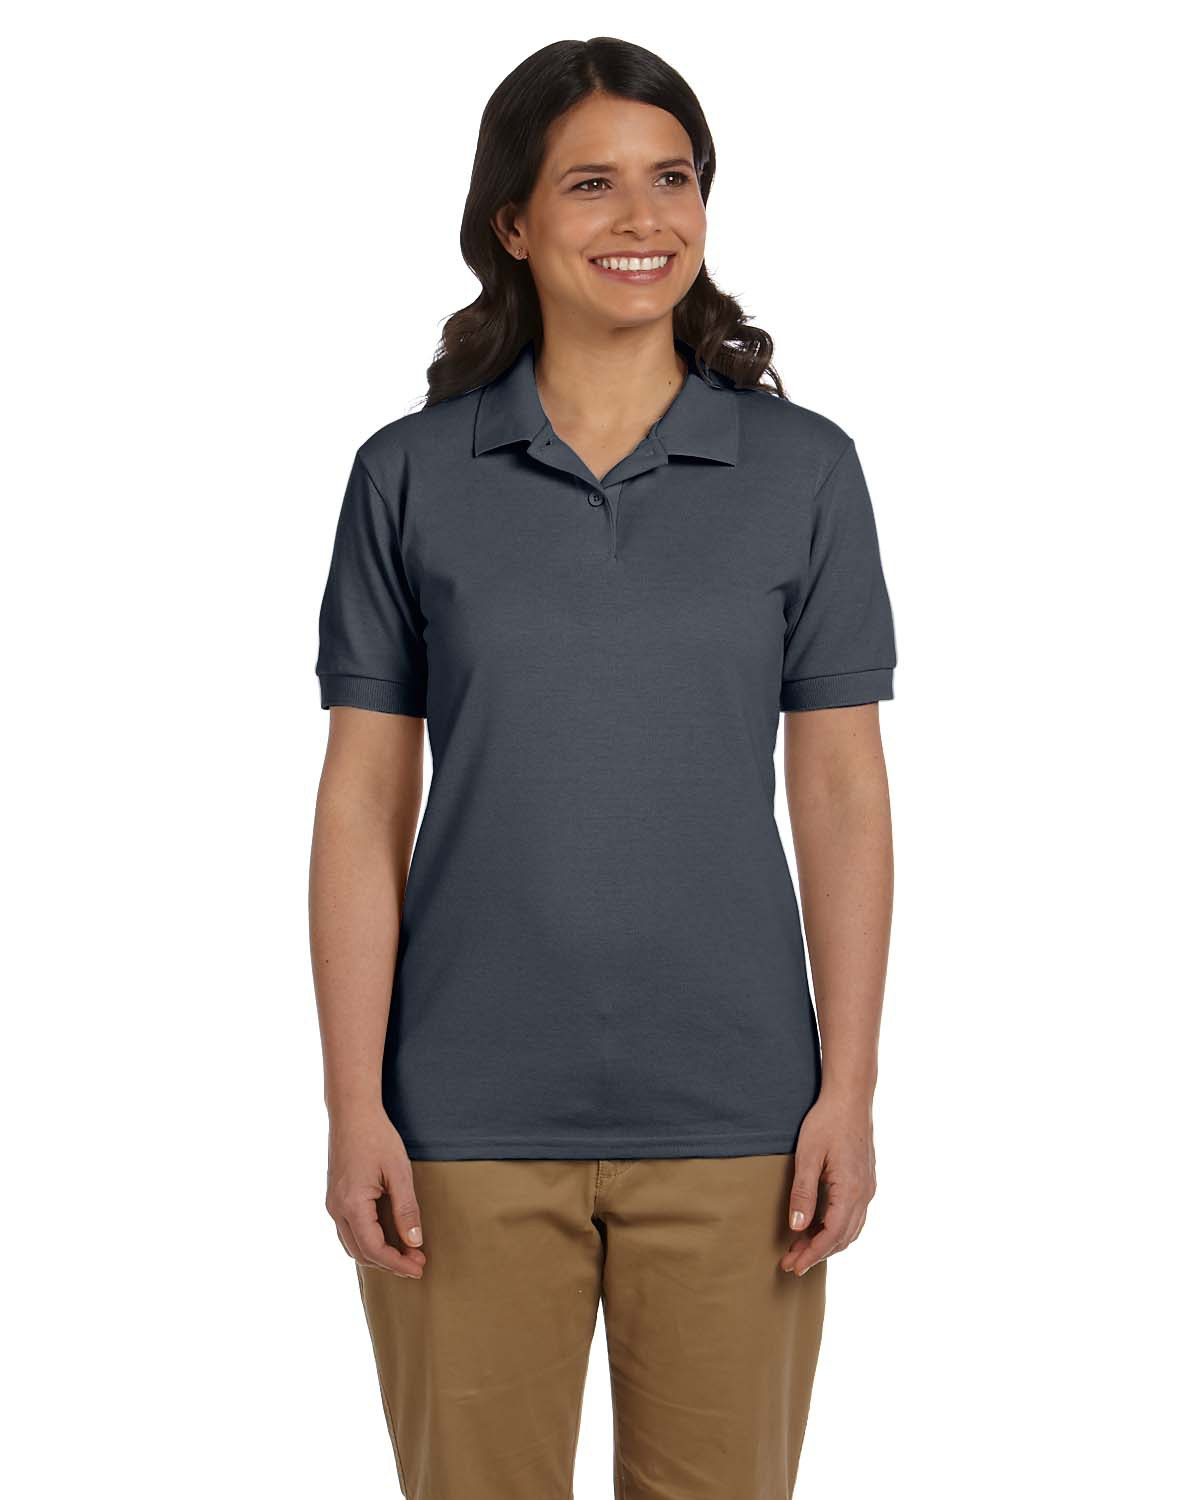 Ladies' DryBlend® 6.8 oz. Pique Polo